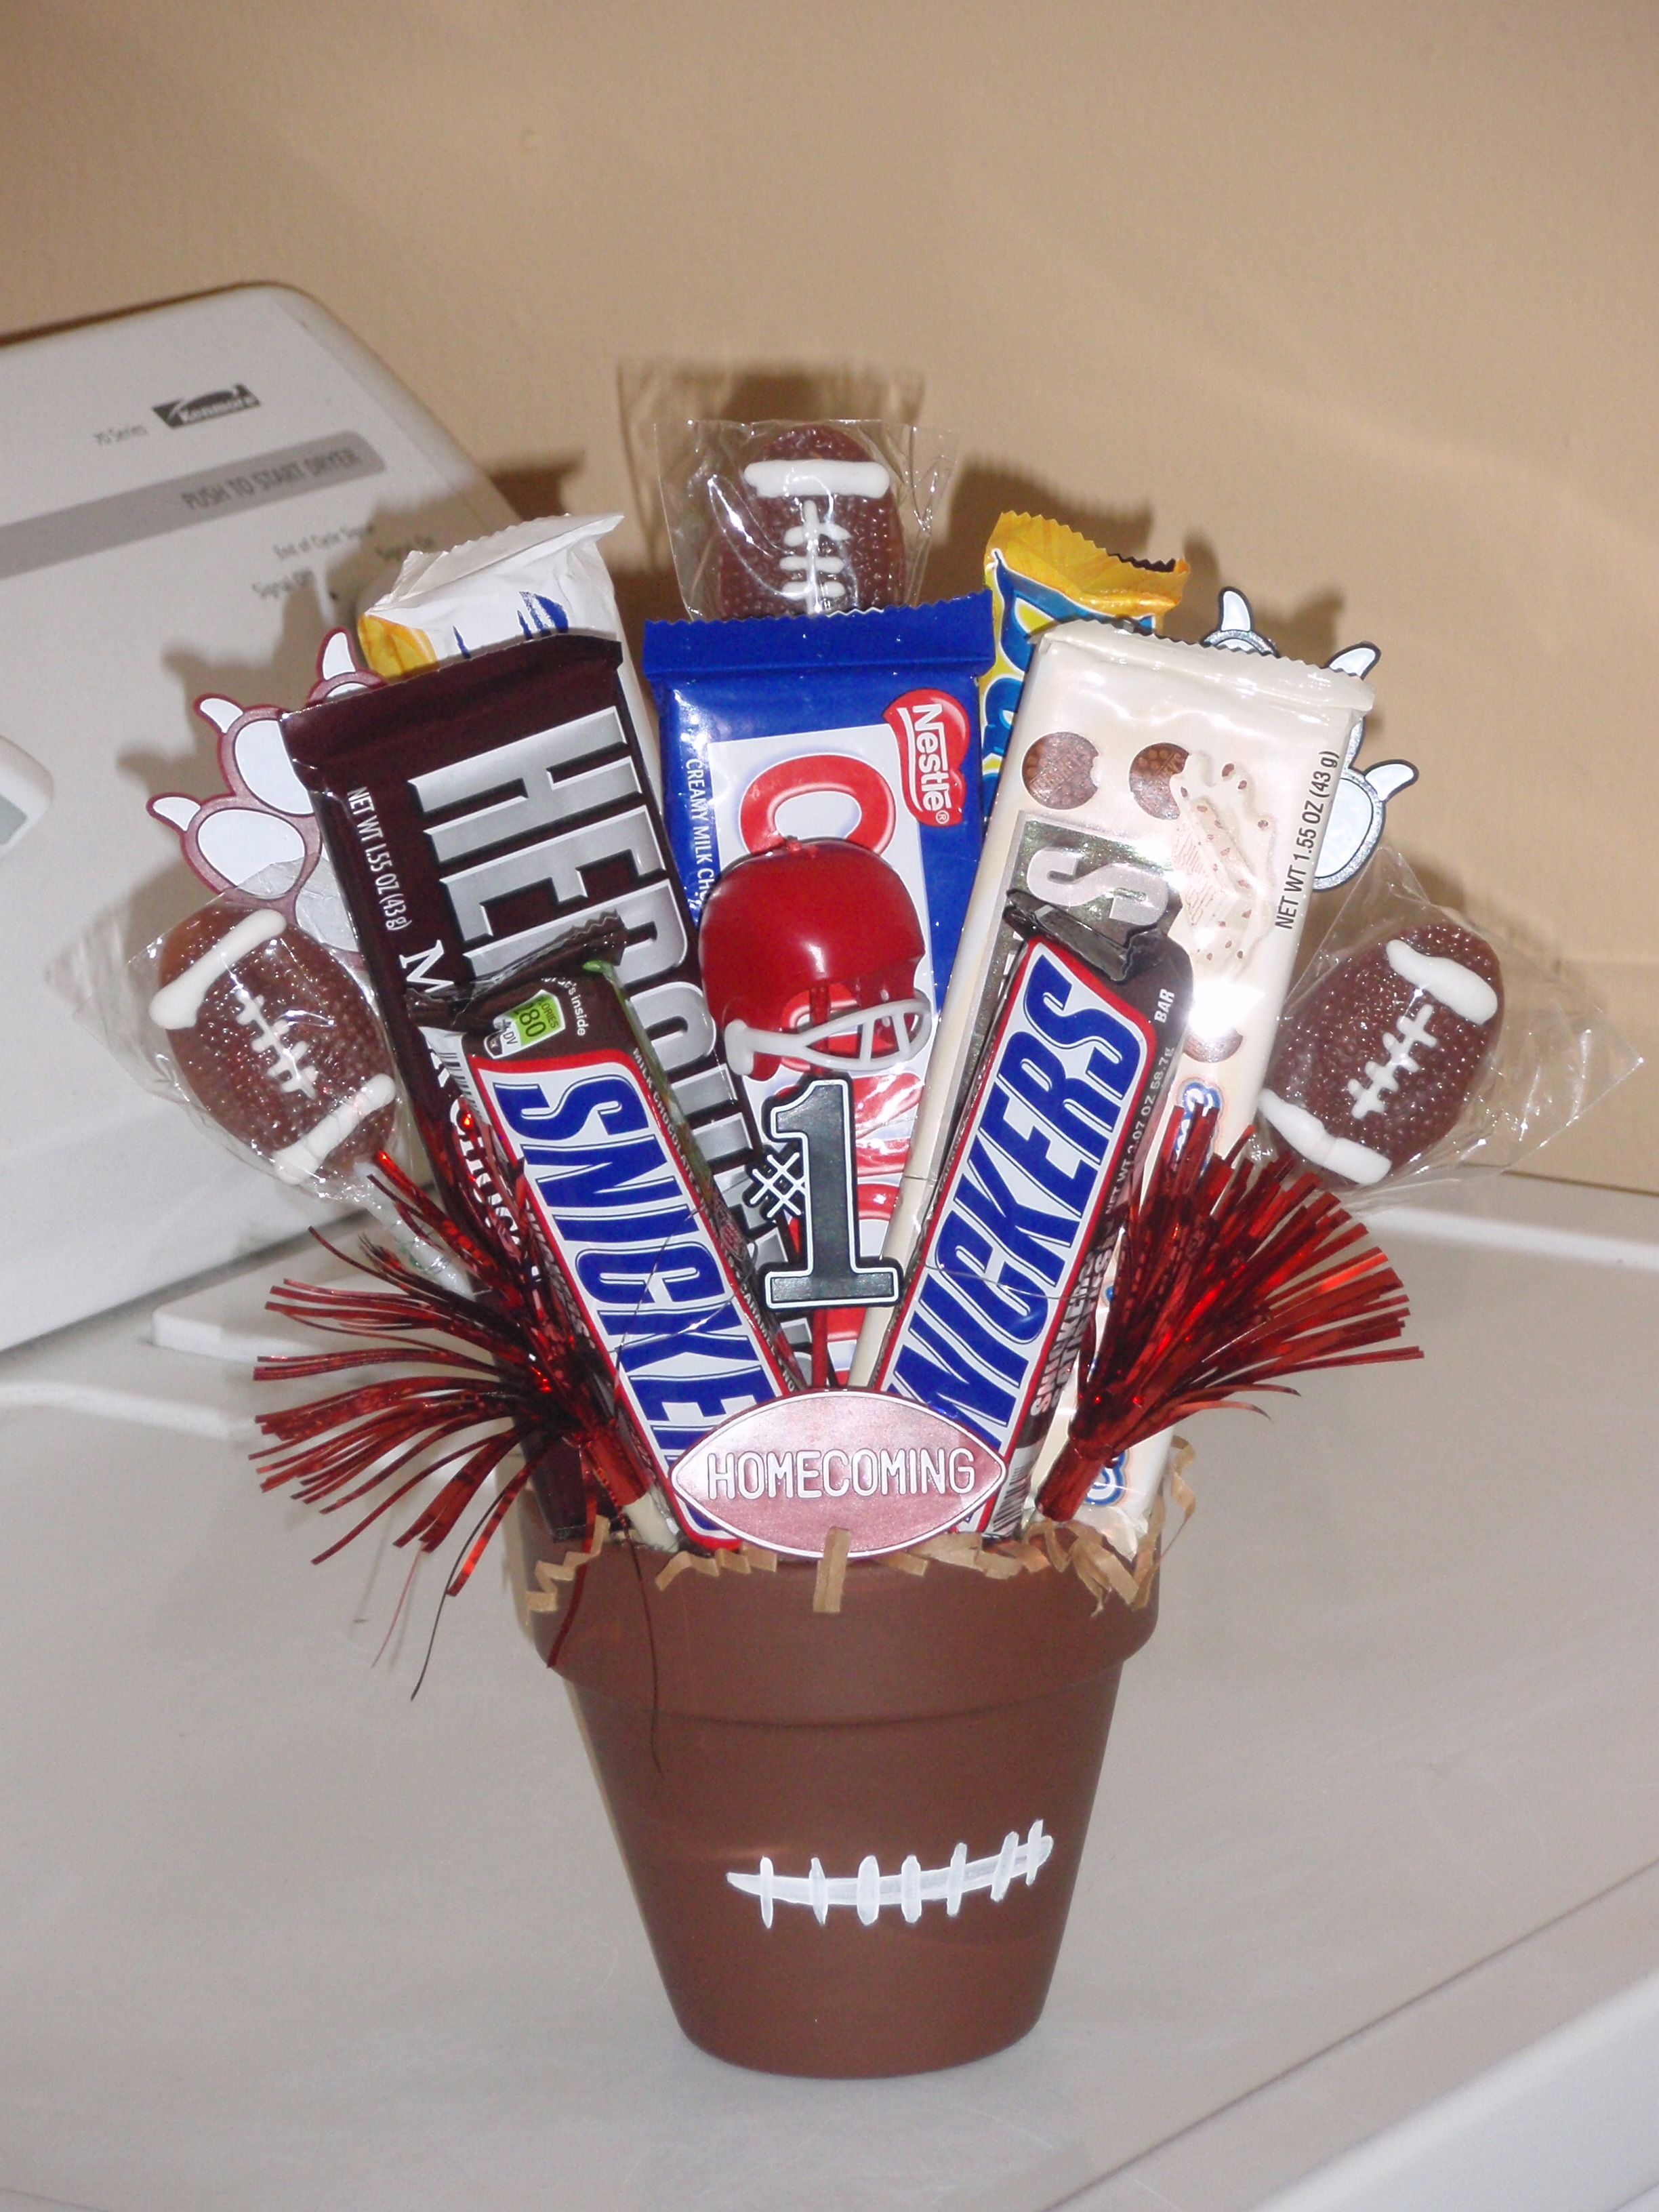 Made this for a football player on Homecoming! | Gift Ideas ...